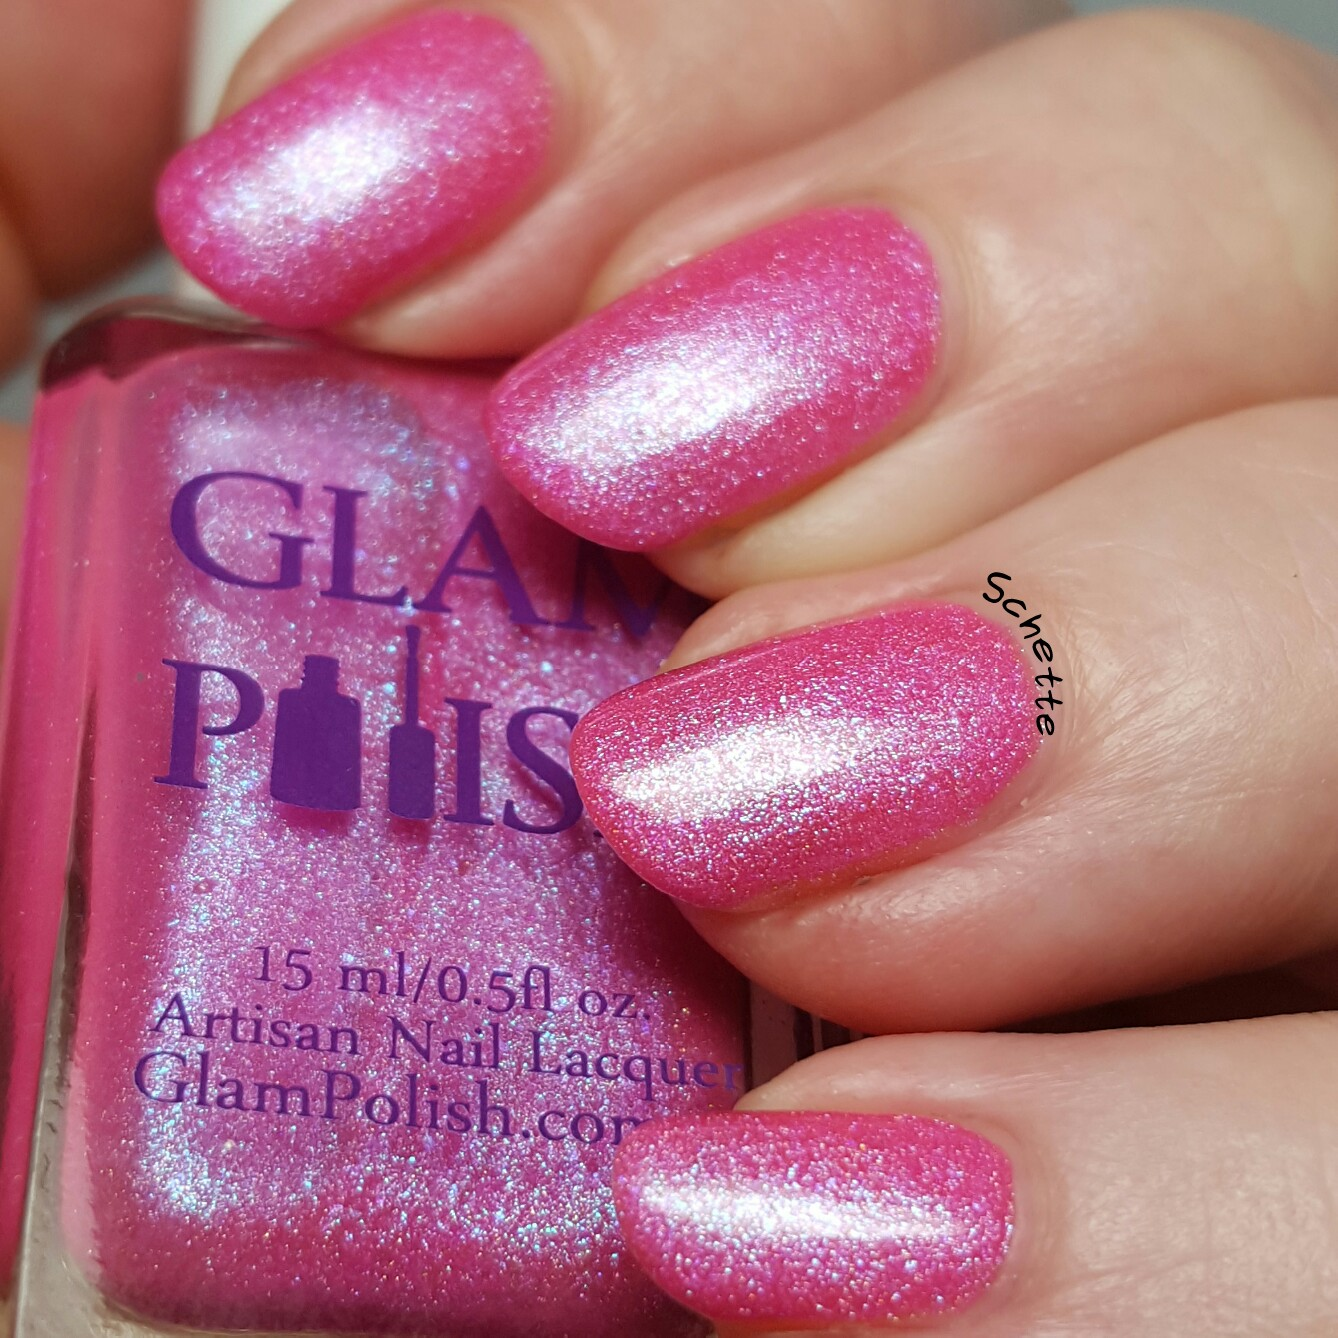 Glam Polish - Rose dawn